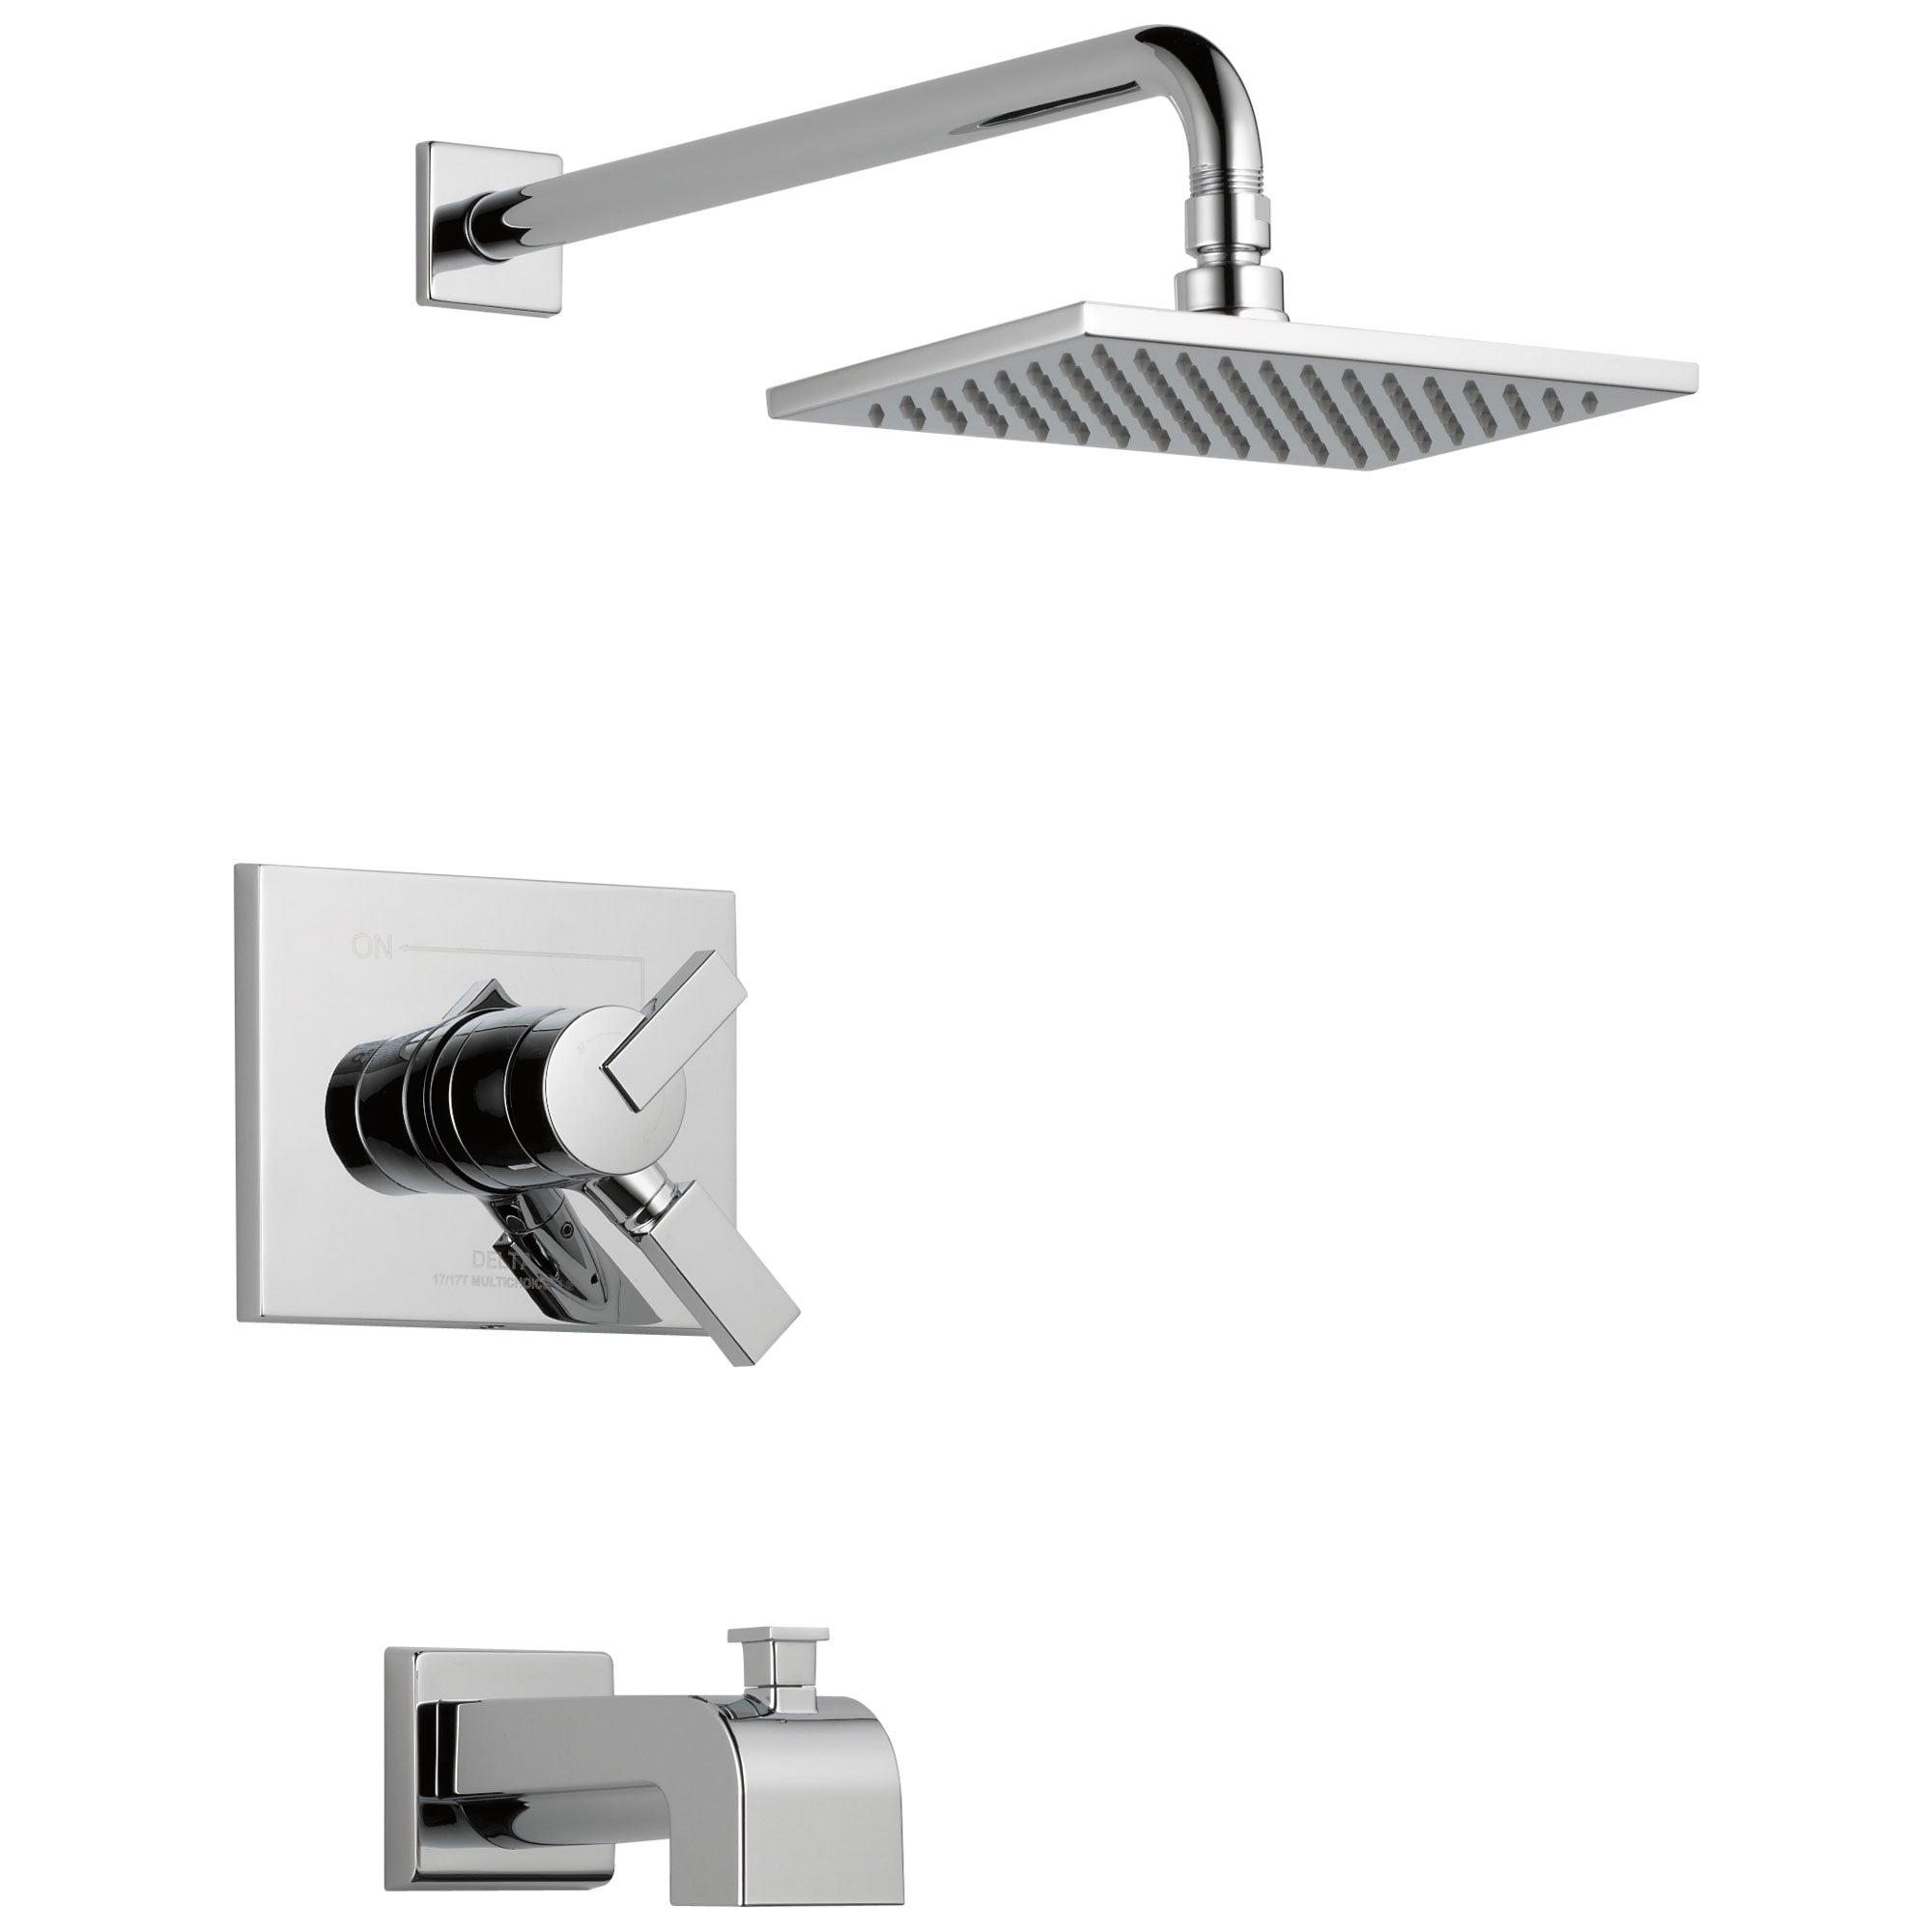 Delta Vero Chrome Finish Water Efficient Tub & Shower Combo Faucet Includes Monitor 17 Series Cartridge, Handles, and Valve with Stops D3342V